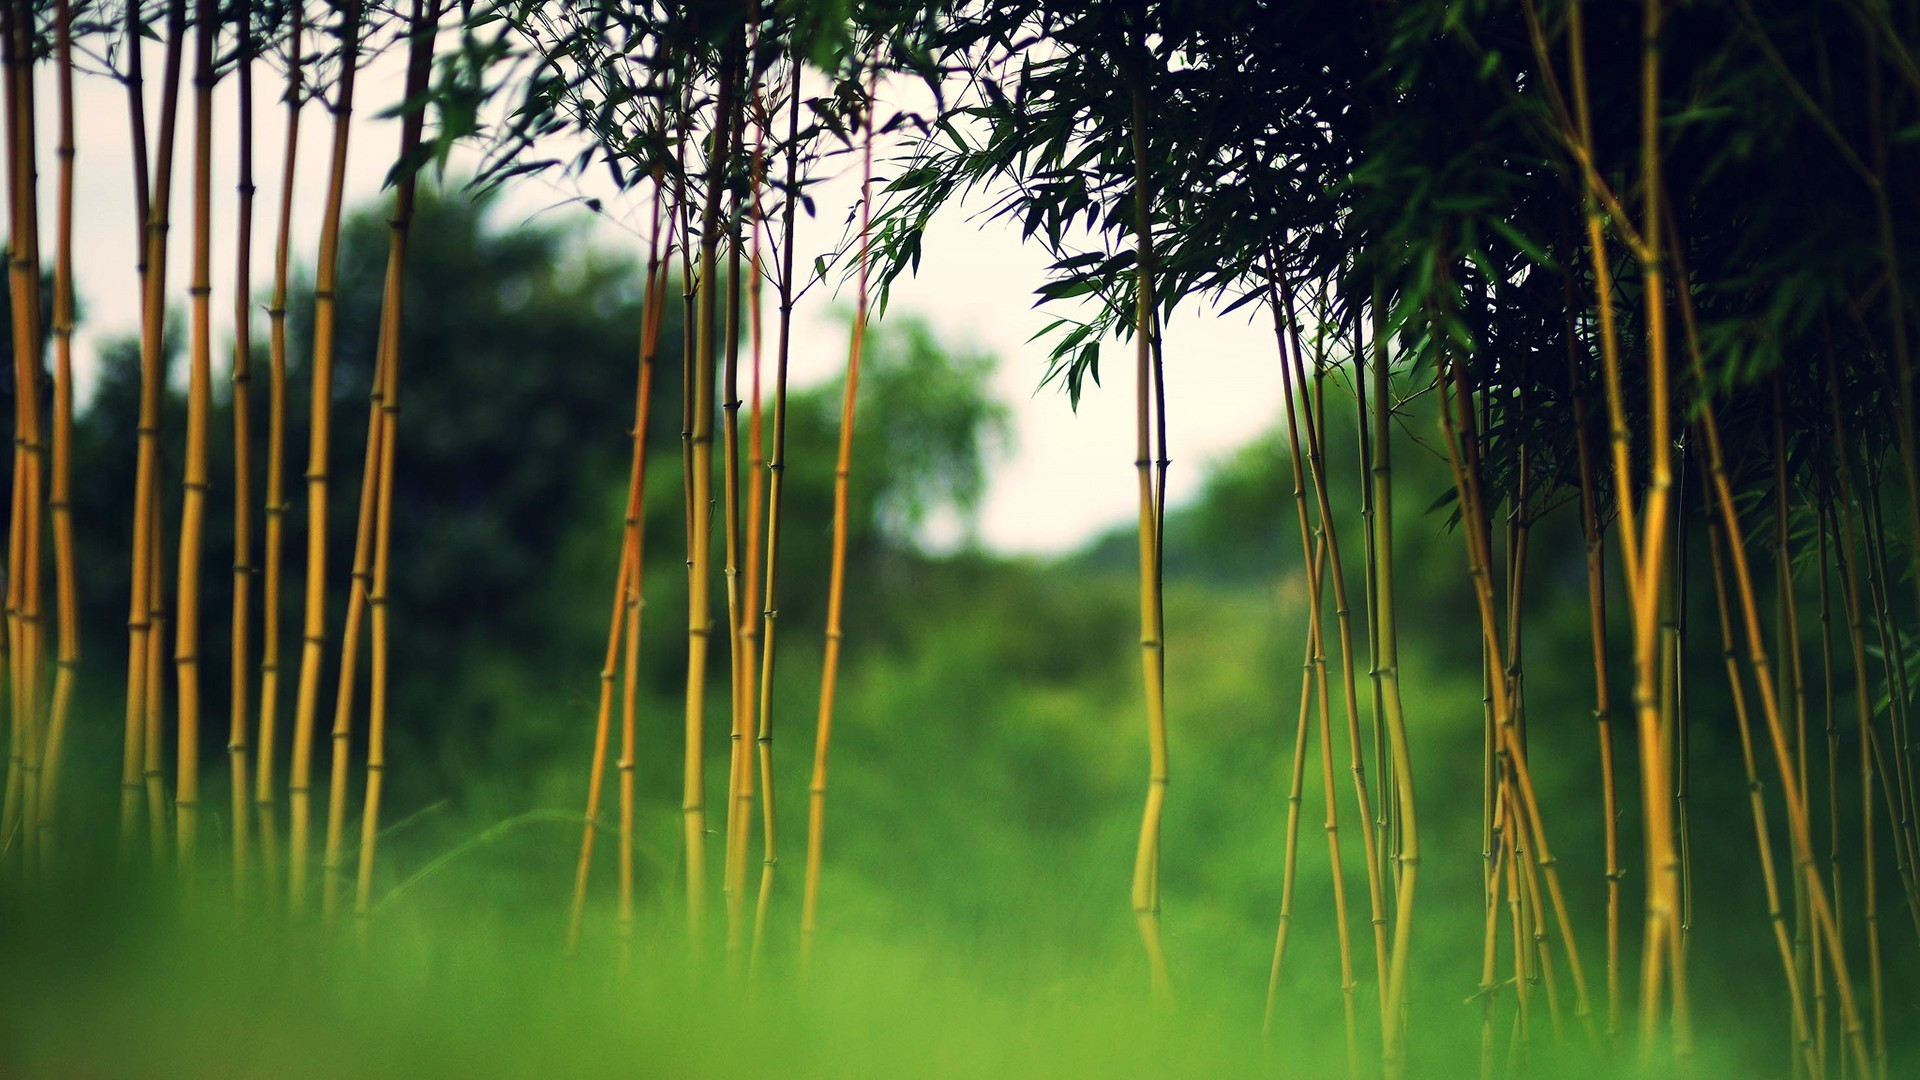 1920x1080 Images Bamboo Backgrounds.